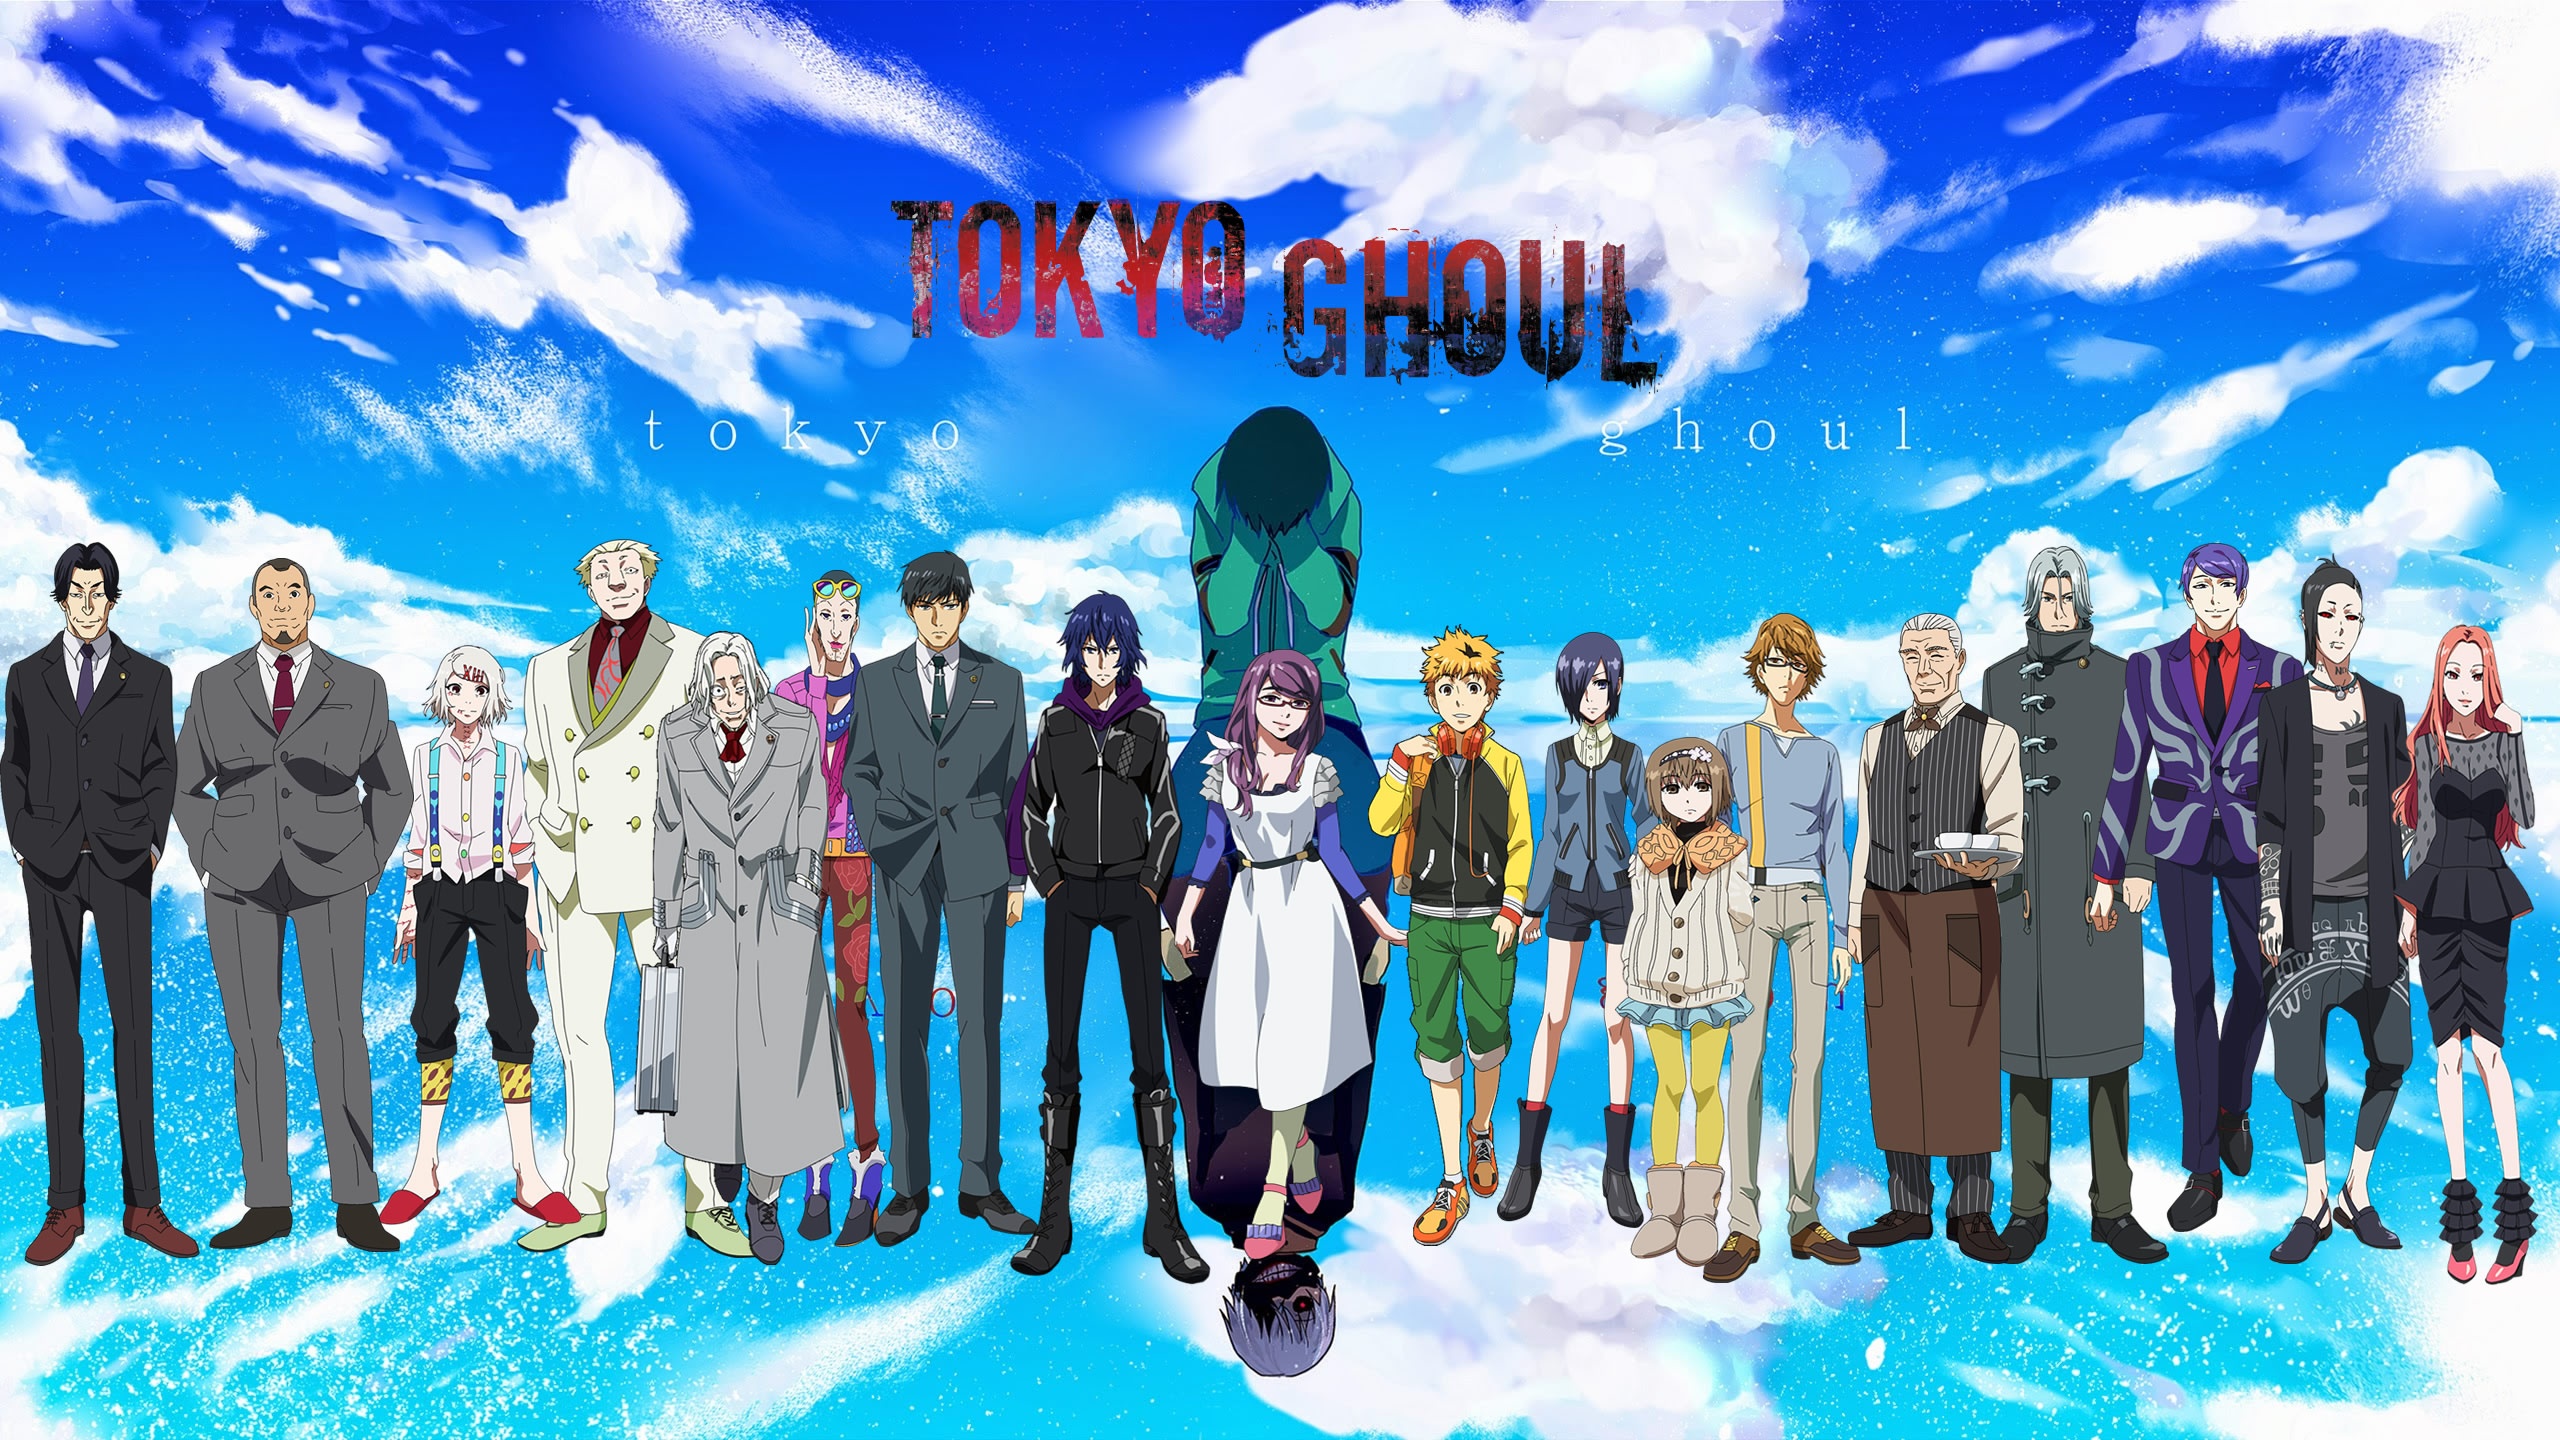 Top Wallpaper High Quality Tokyo Ghoul - tokyo_ghoul___who_is_that_inside_of_me__wallpaper_by_windyechoes-d9cszfh  Collection_197517.jpg